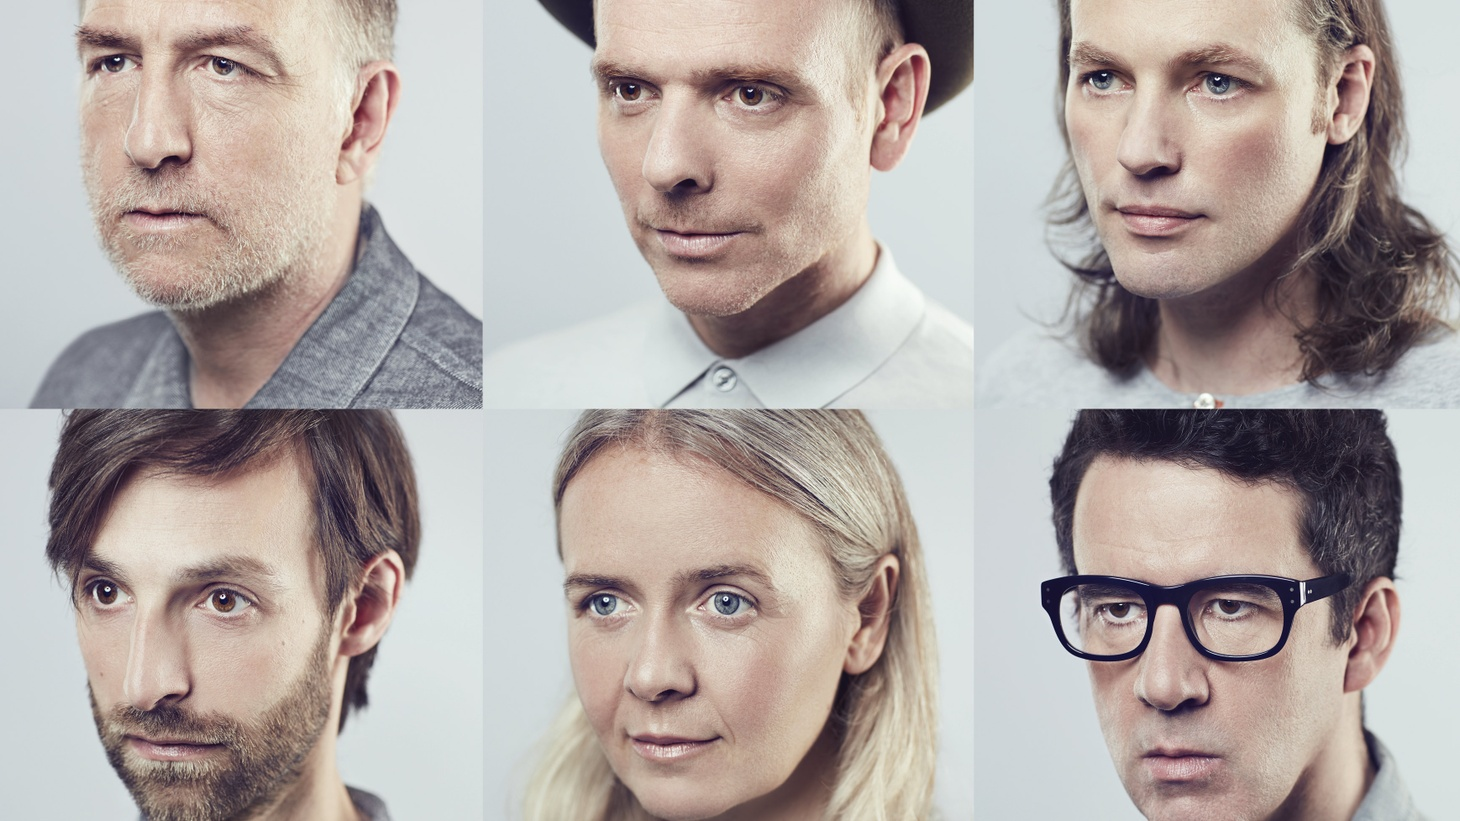 Spellbinding rhymes and hypnotic beats are at the center of Belle & Sebastian's most recent song We Were Beautiful.